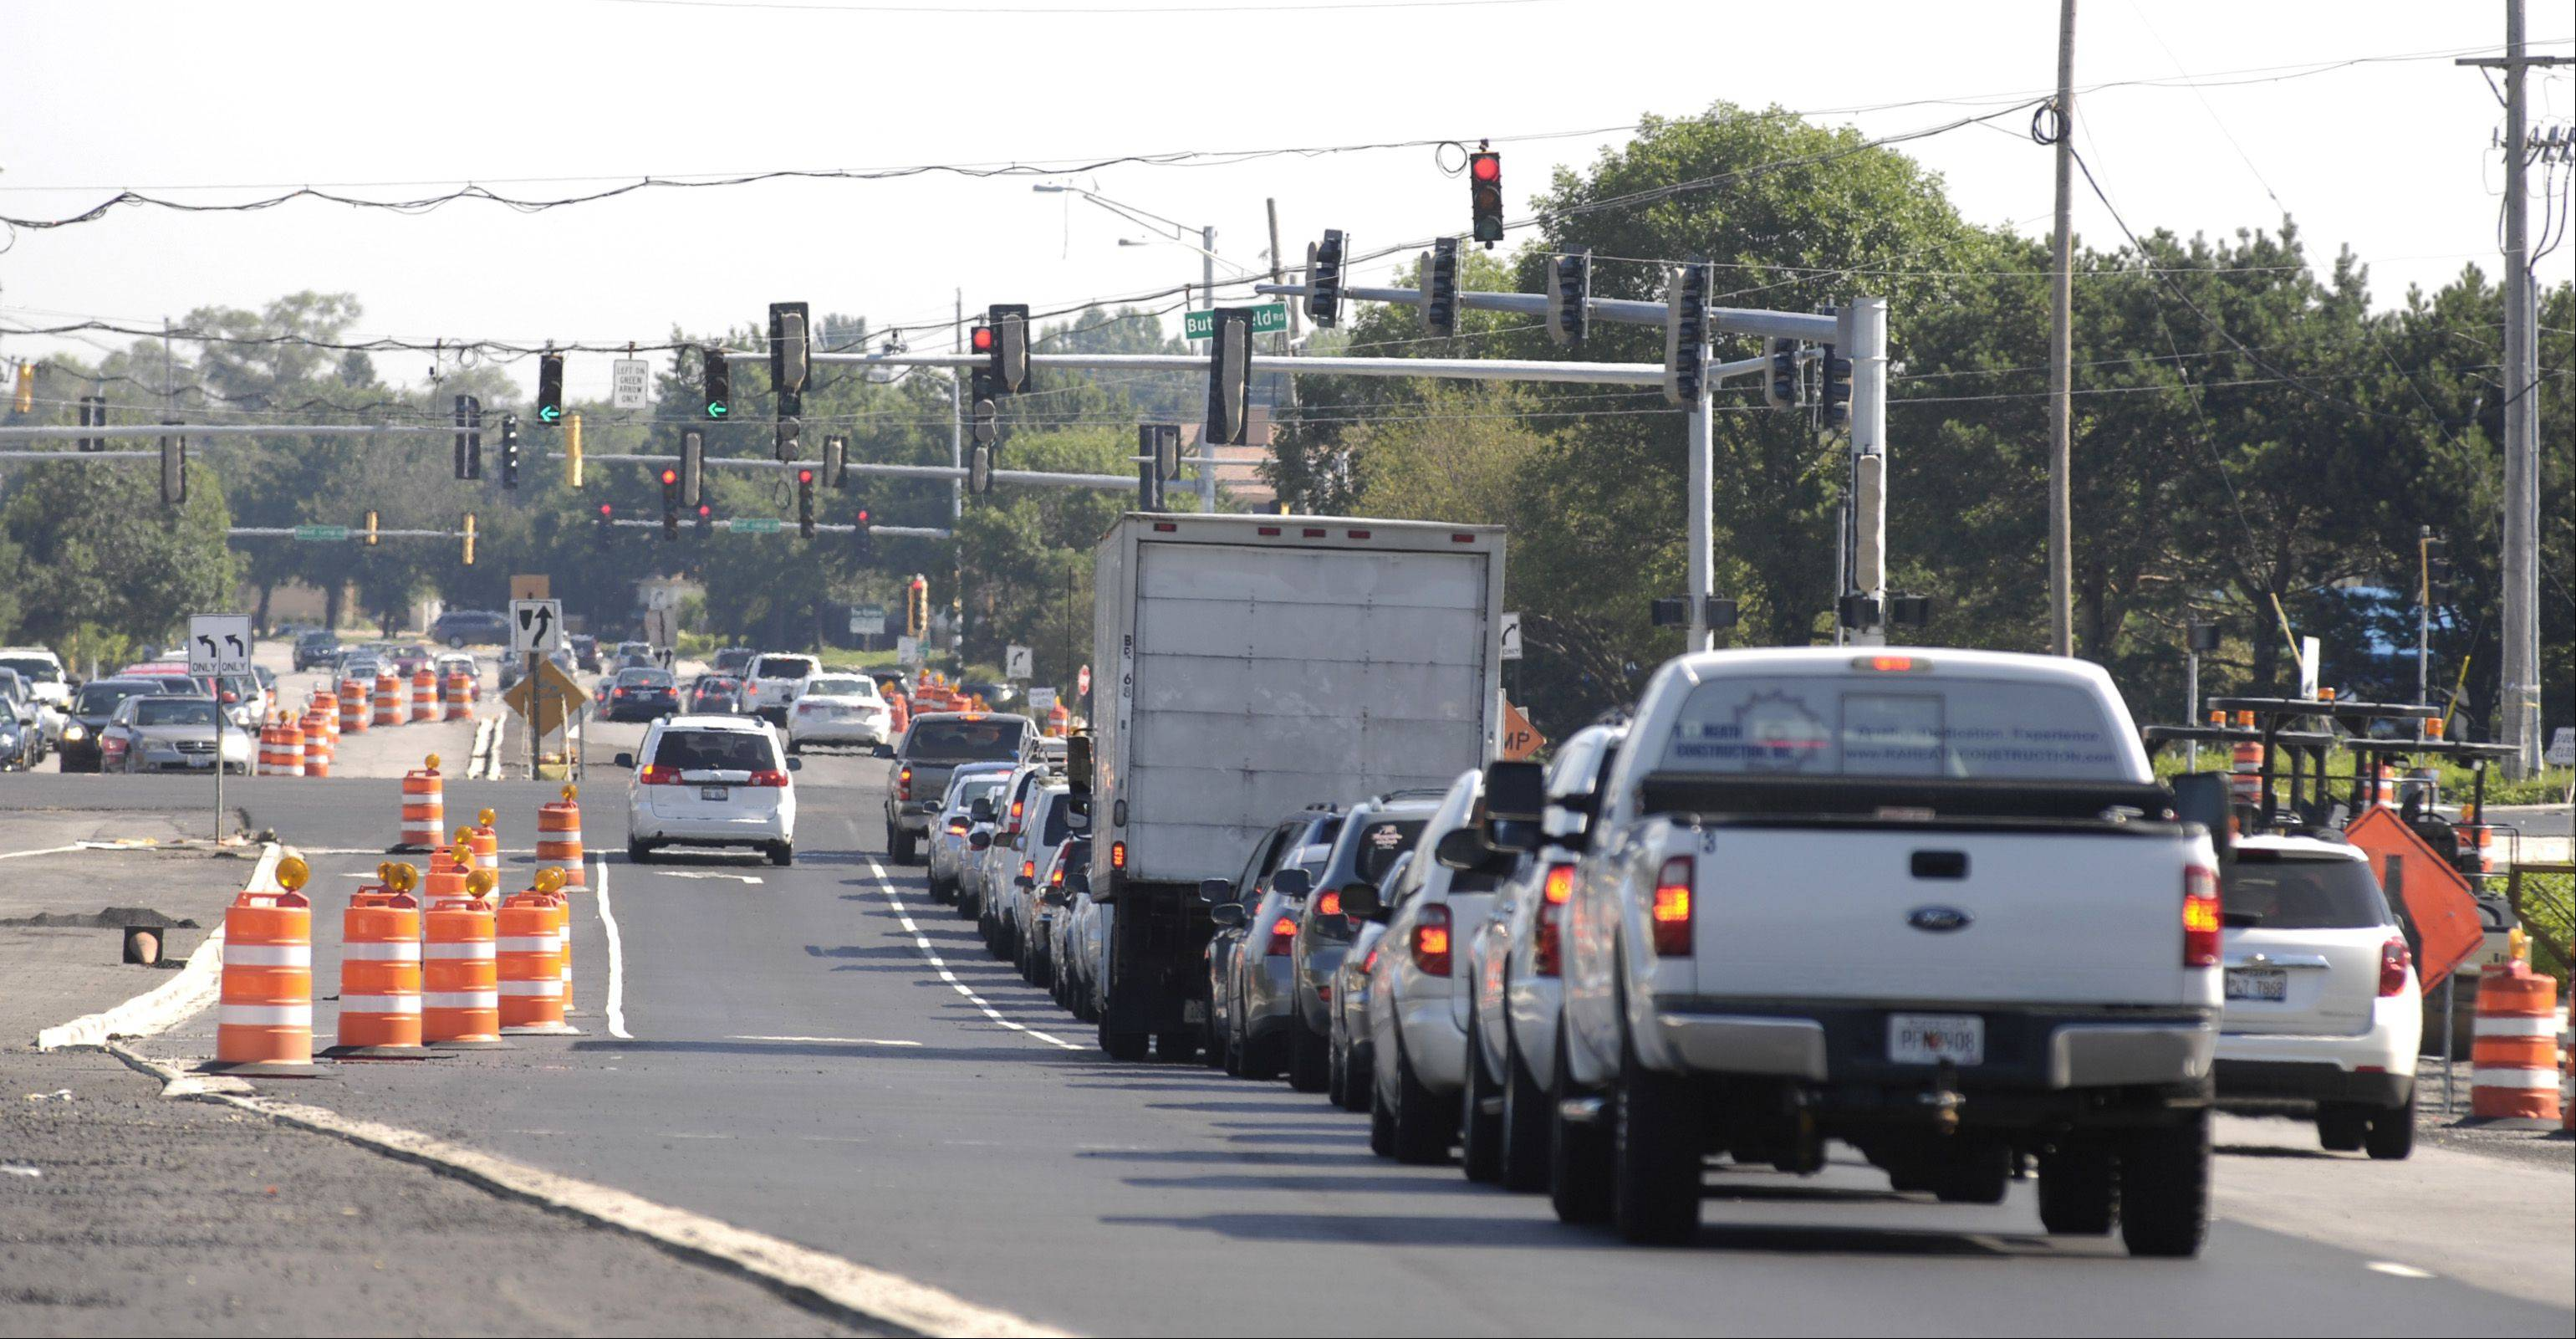 Construction work along Naperville Road near the intersection of Butterfield Road in Wheaton has caused traffic delays and frustrated area business owners.